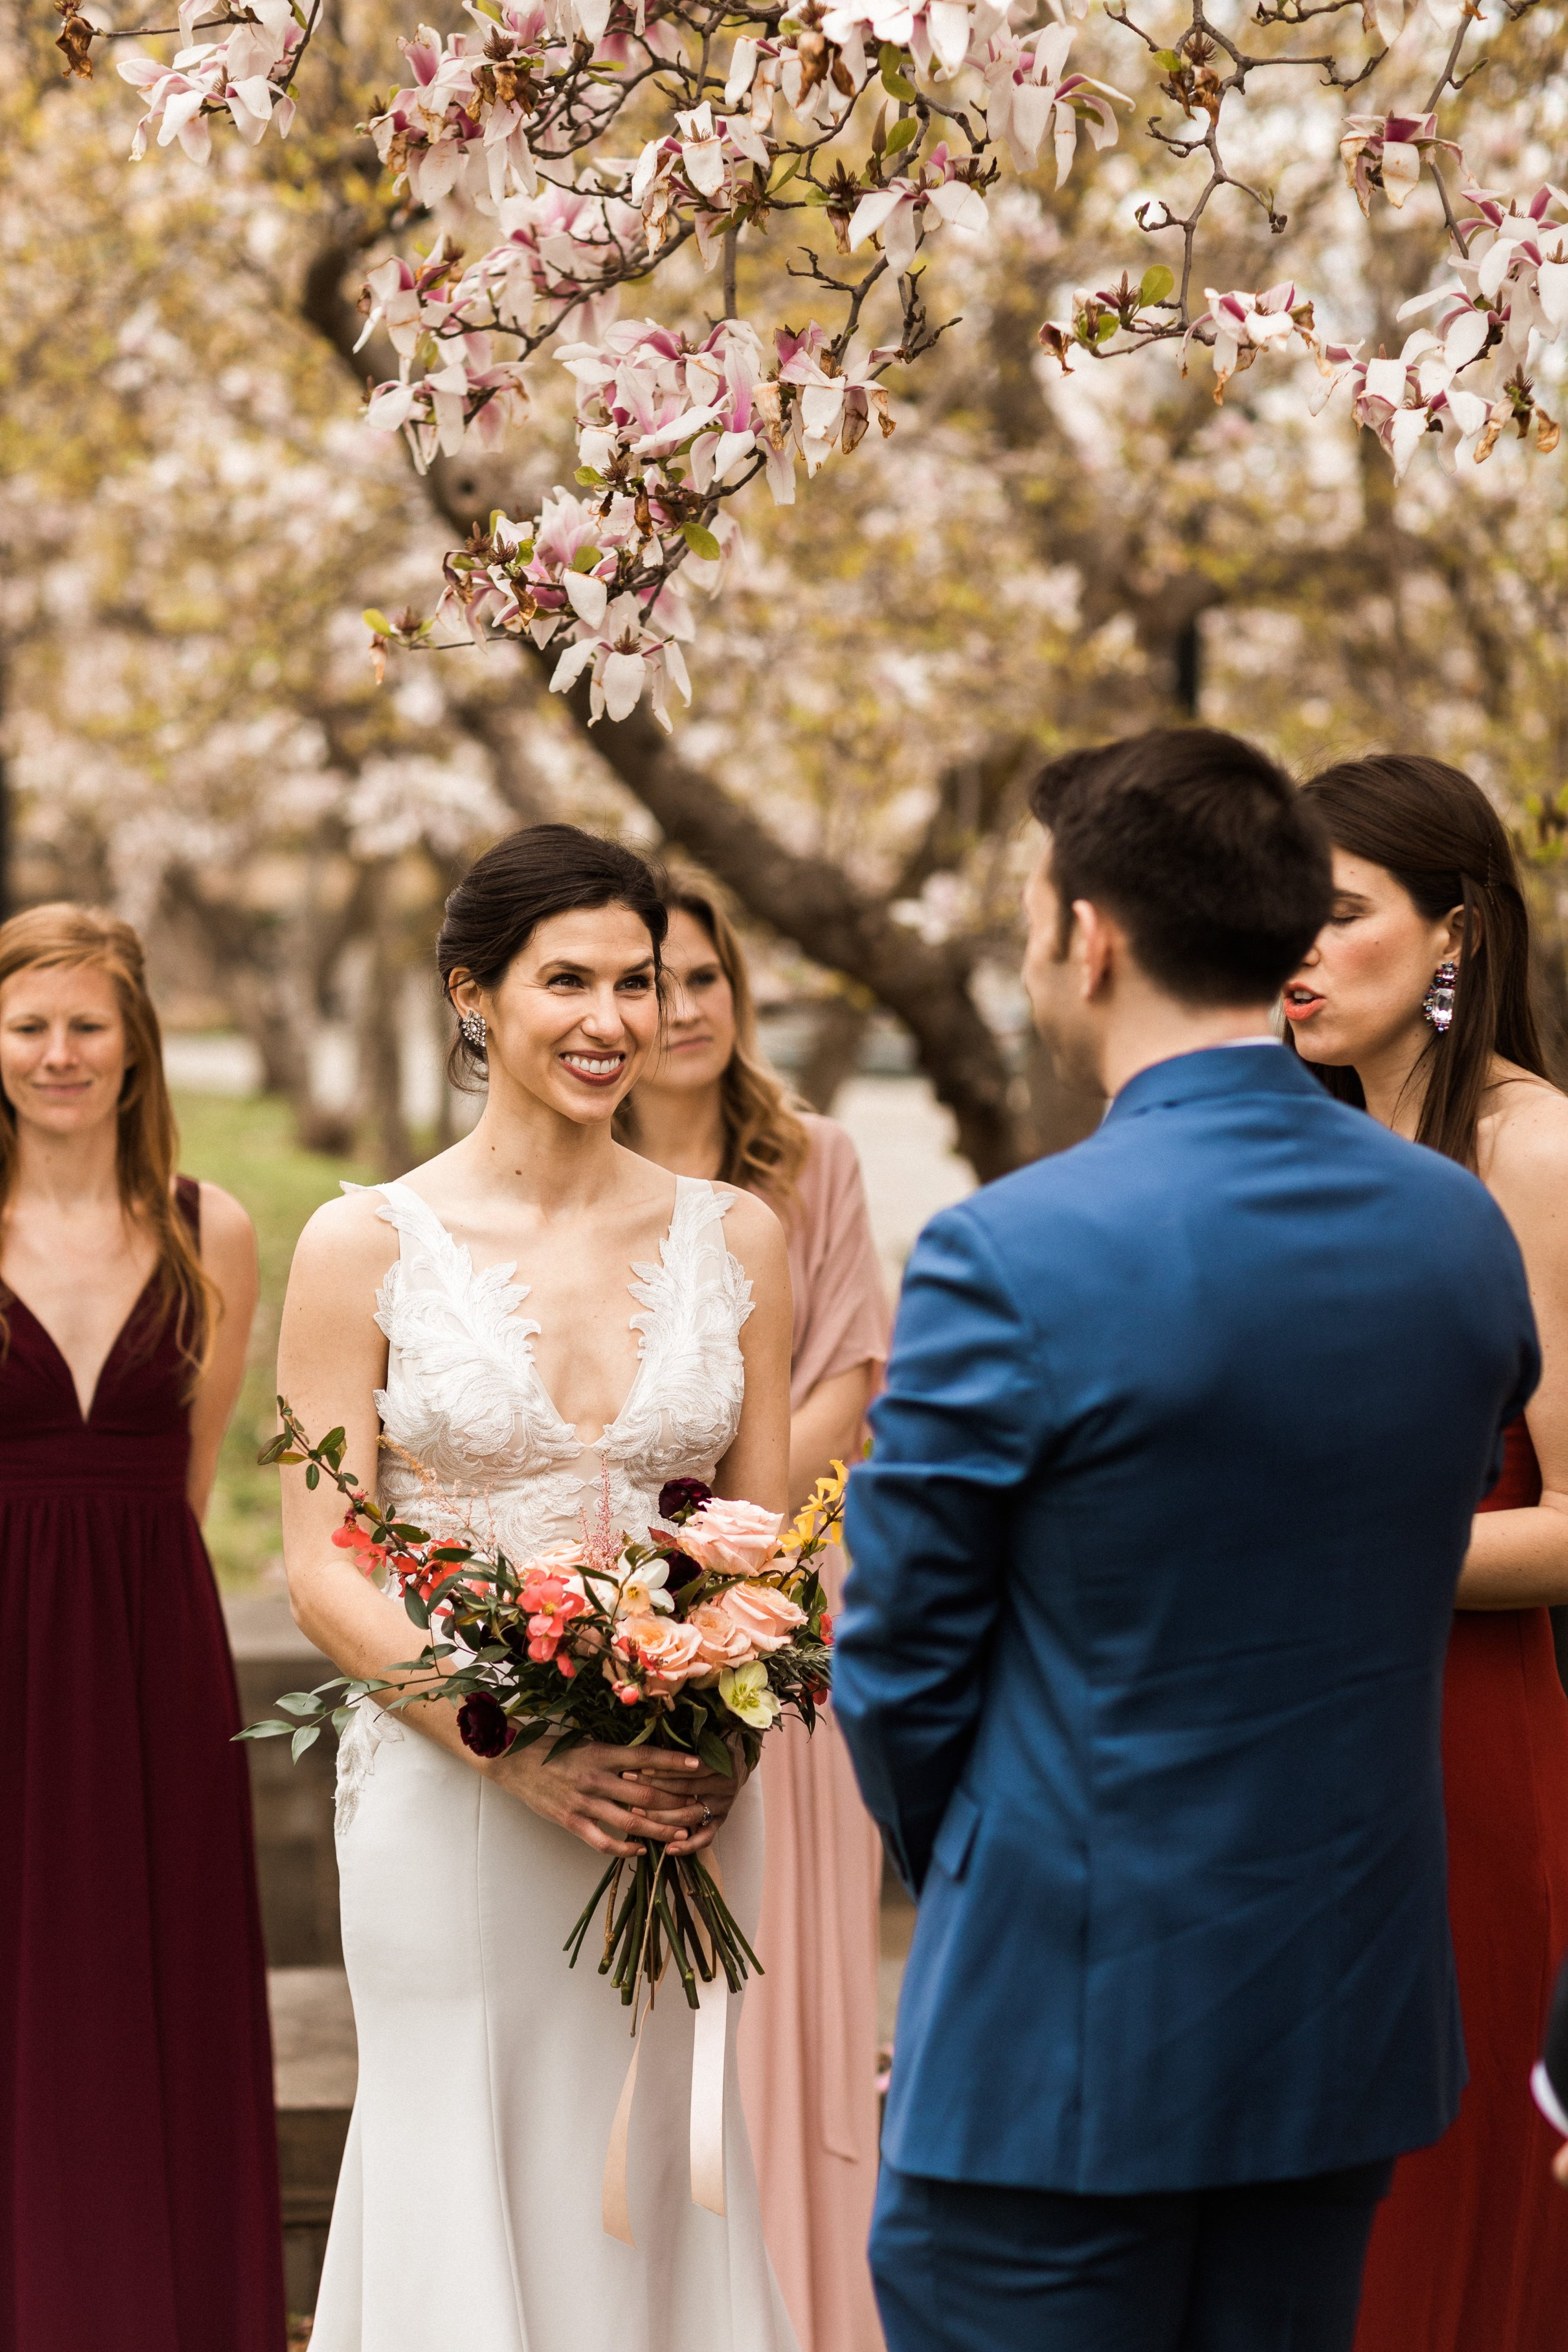 Caroline Wood and Chris Proto's elopement in Rawlins Park, Washington, DC March 21, 2020. Following recommendations from the CDC regarding social distancing to prevent the spread of COVID-19, Caroline and Chris made the difficult decision to postpone their